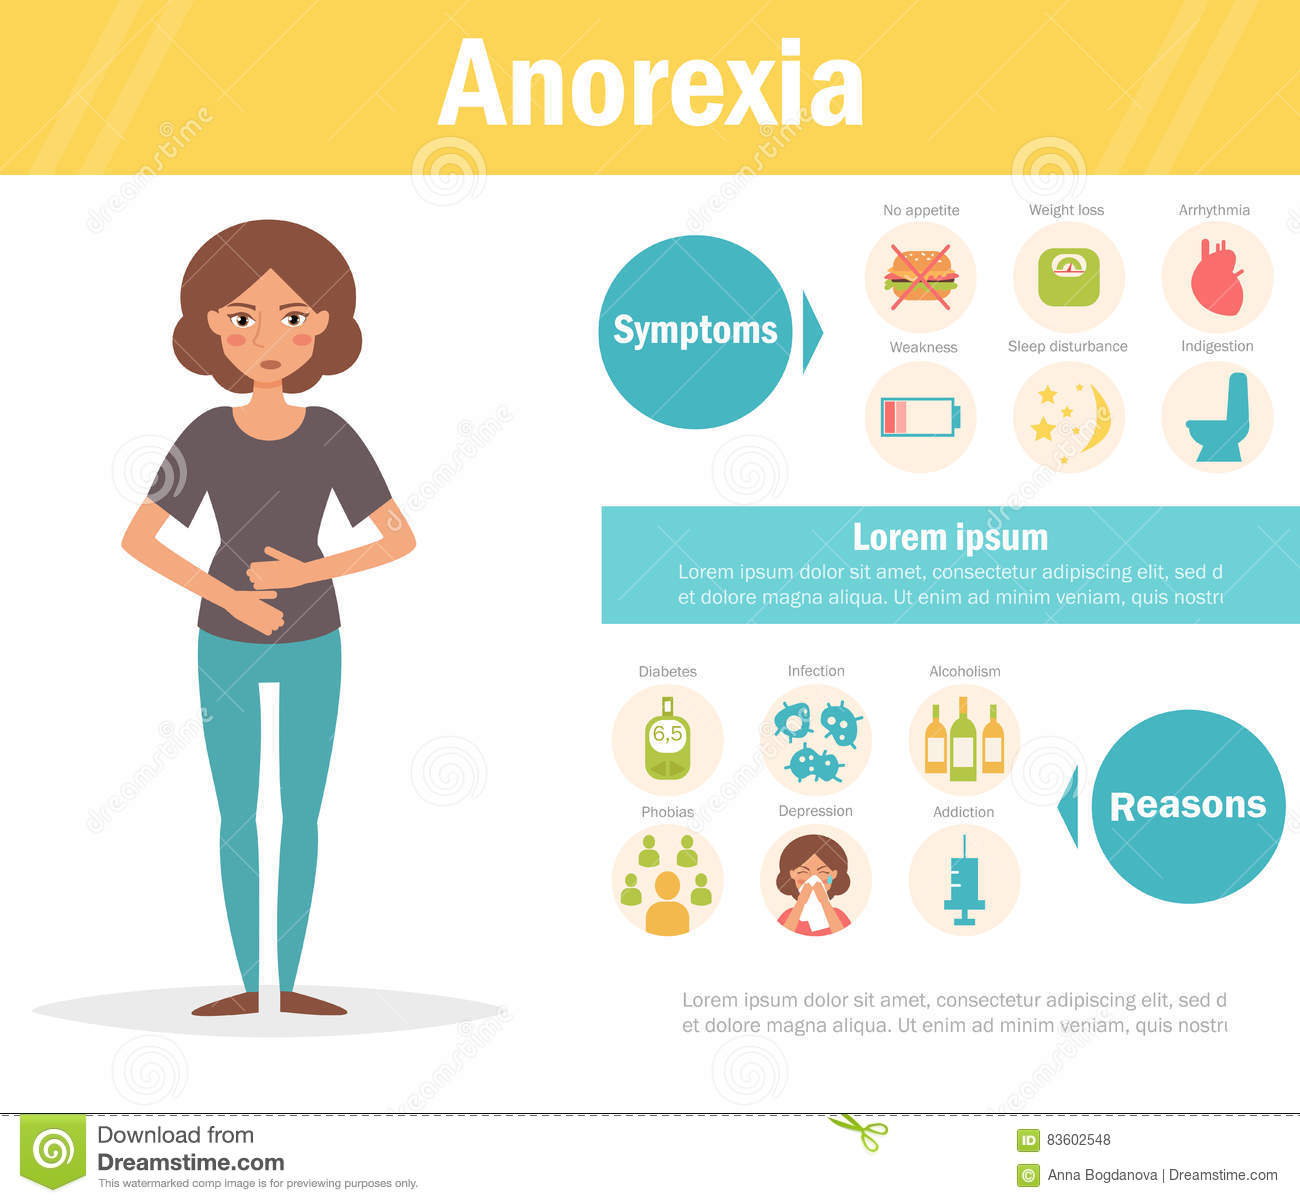 an analysis of the cause and treatment of anorexia Anorexia nervosa essay examples an analysis of the causes, dangers and treatment of anorexia nervosa a comparison of anorexia and bulimia in eating disorders.